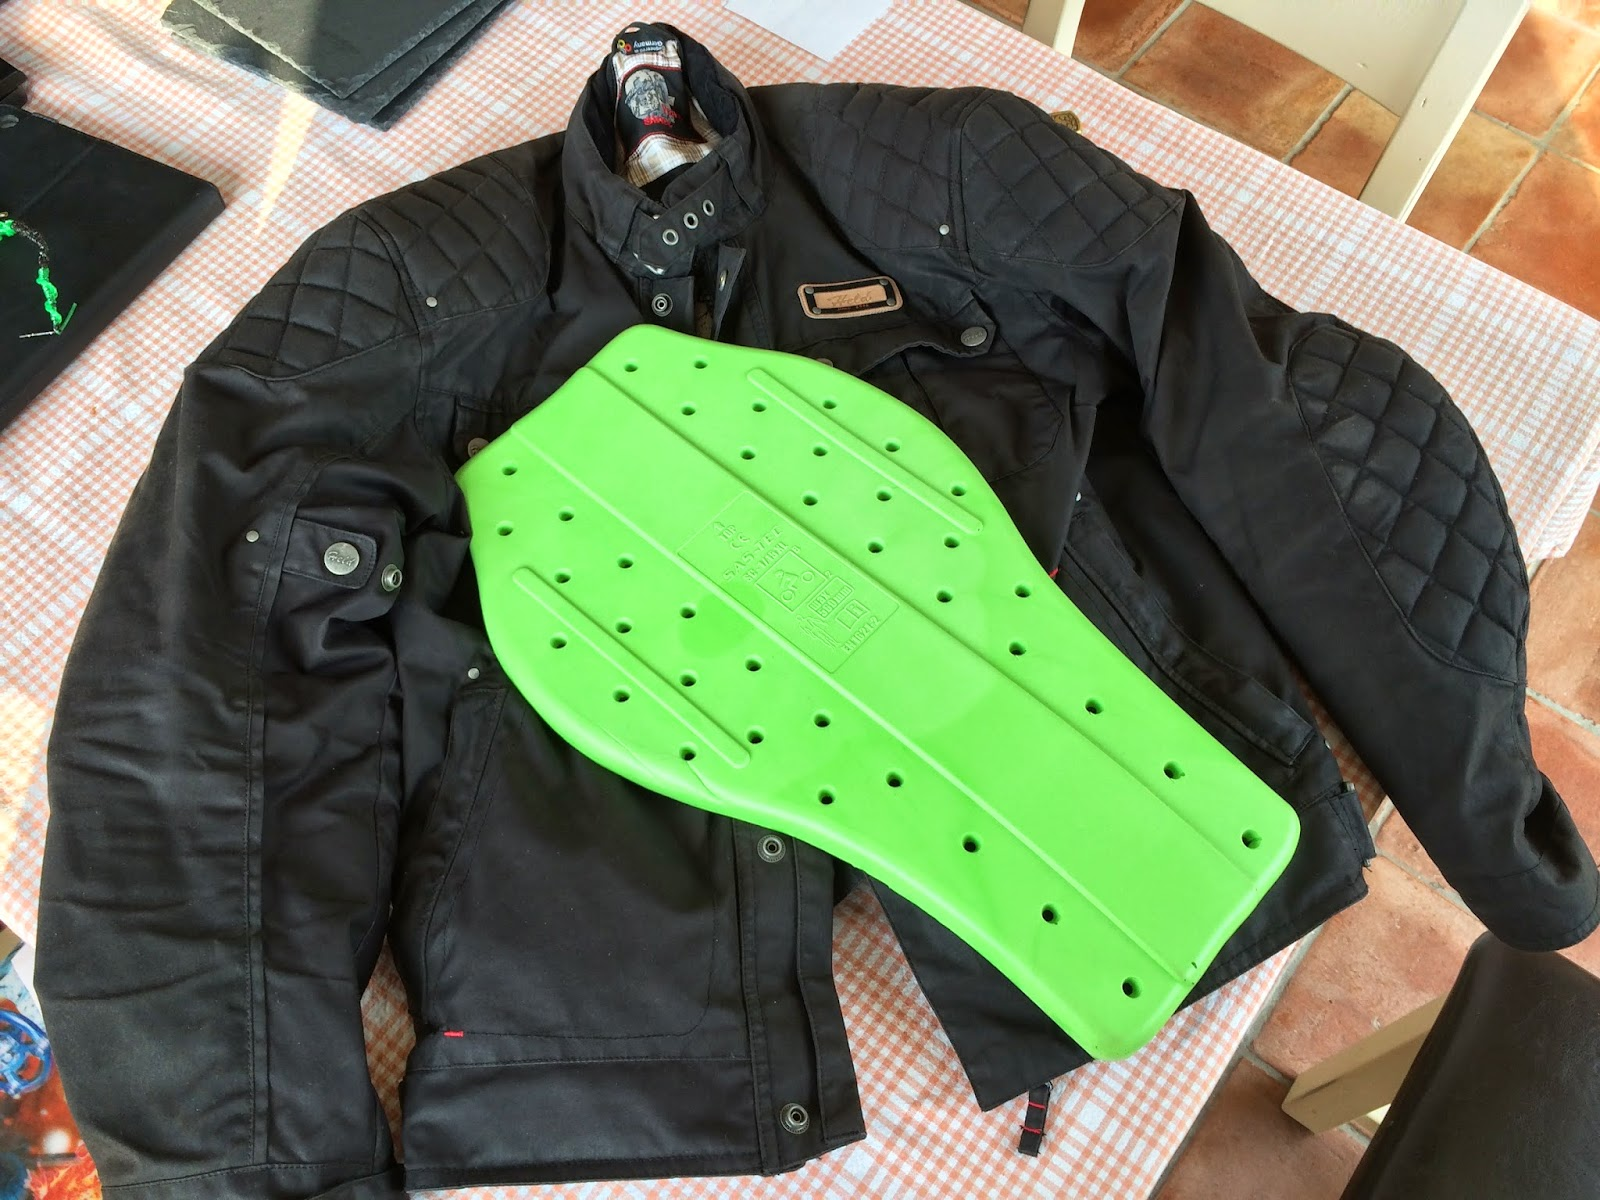 Held make the best motorcycle jackets